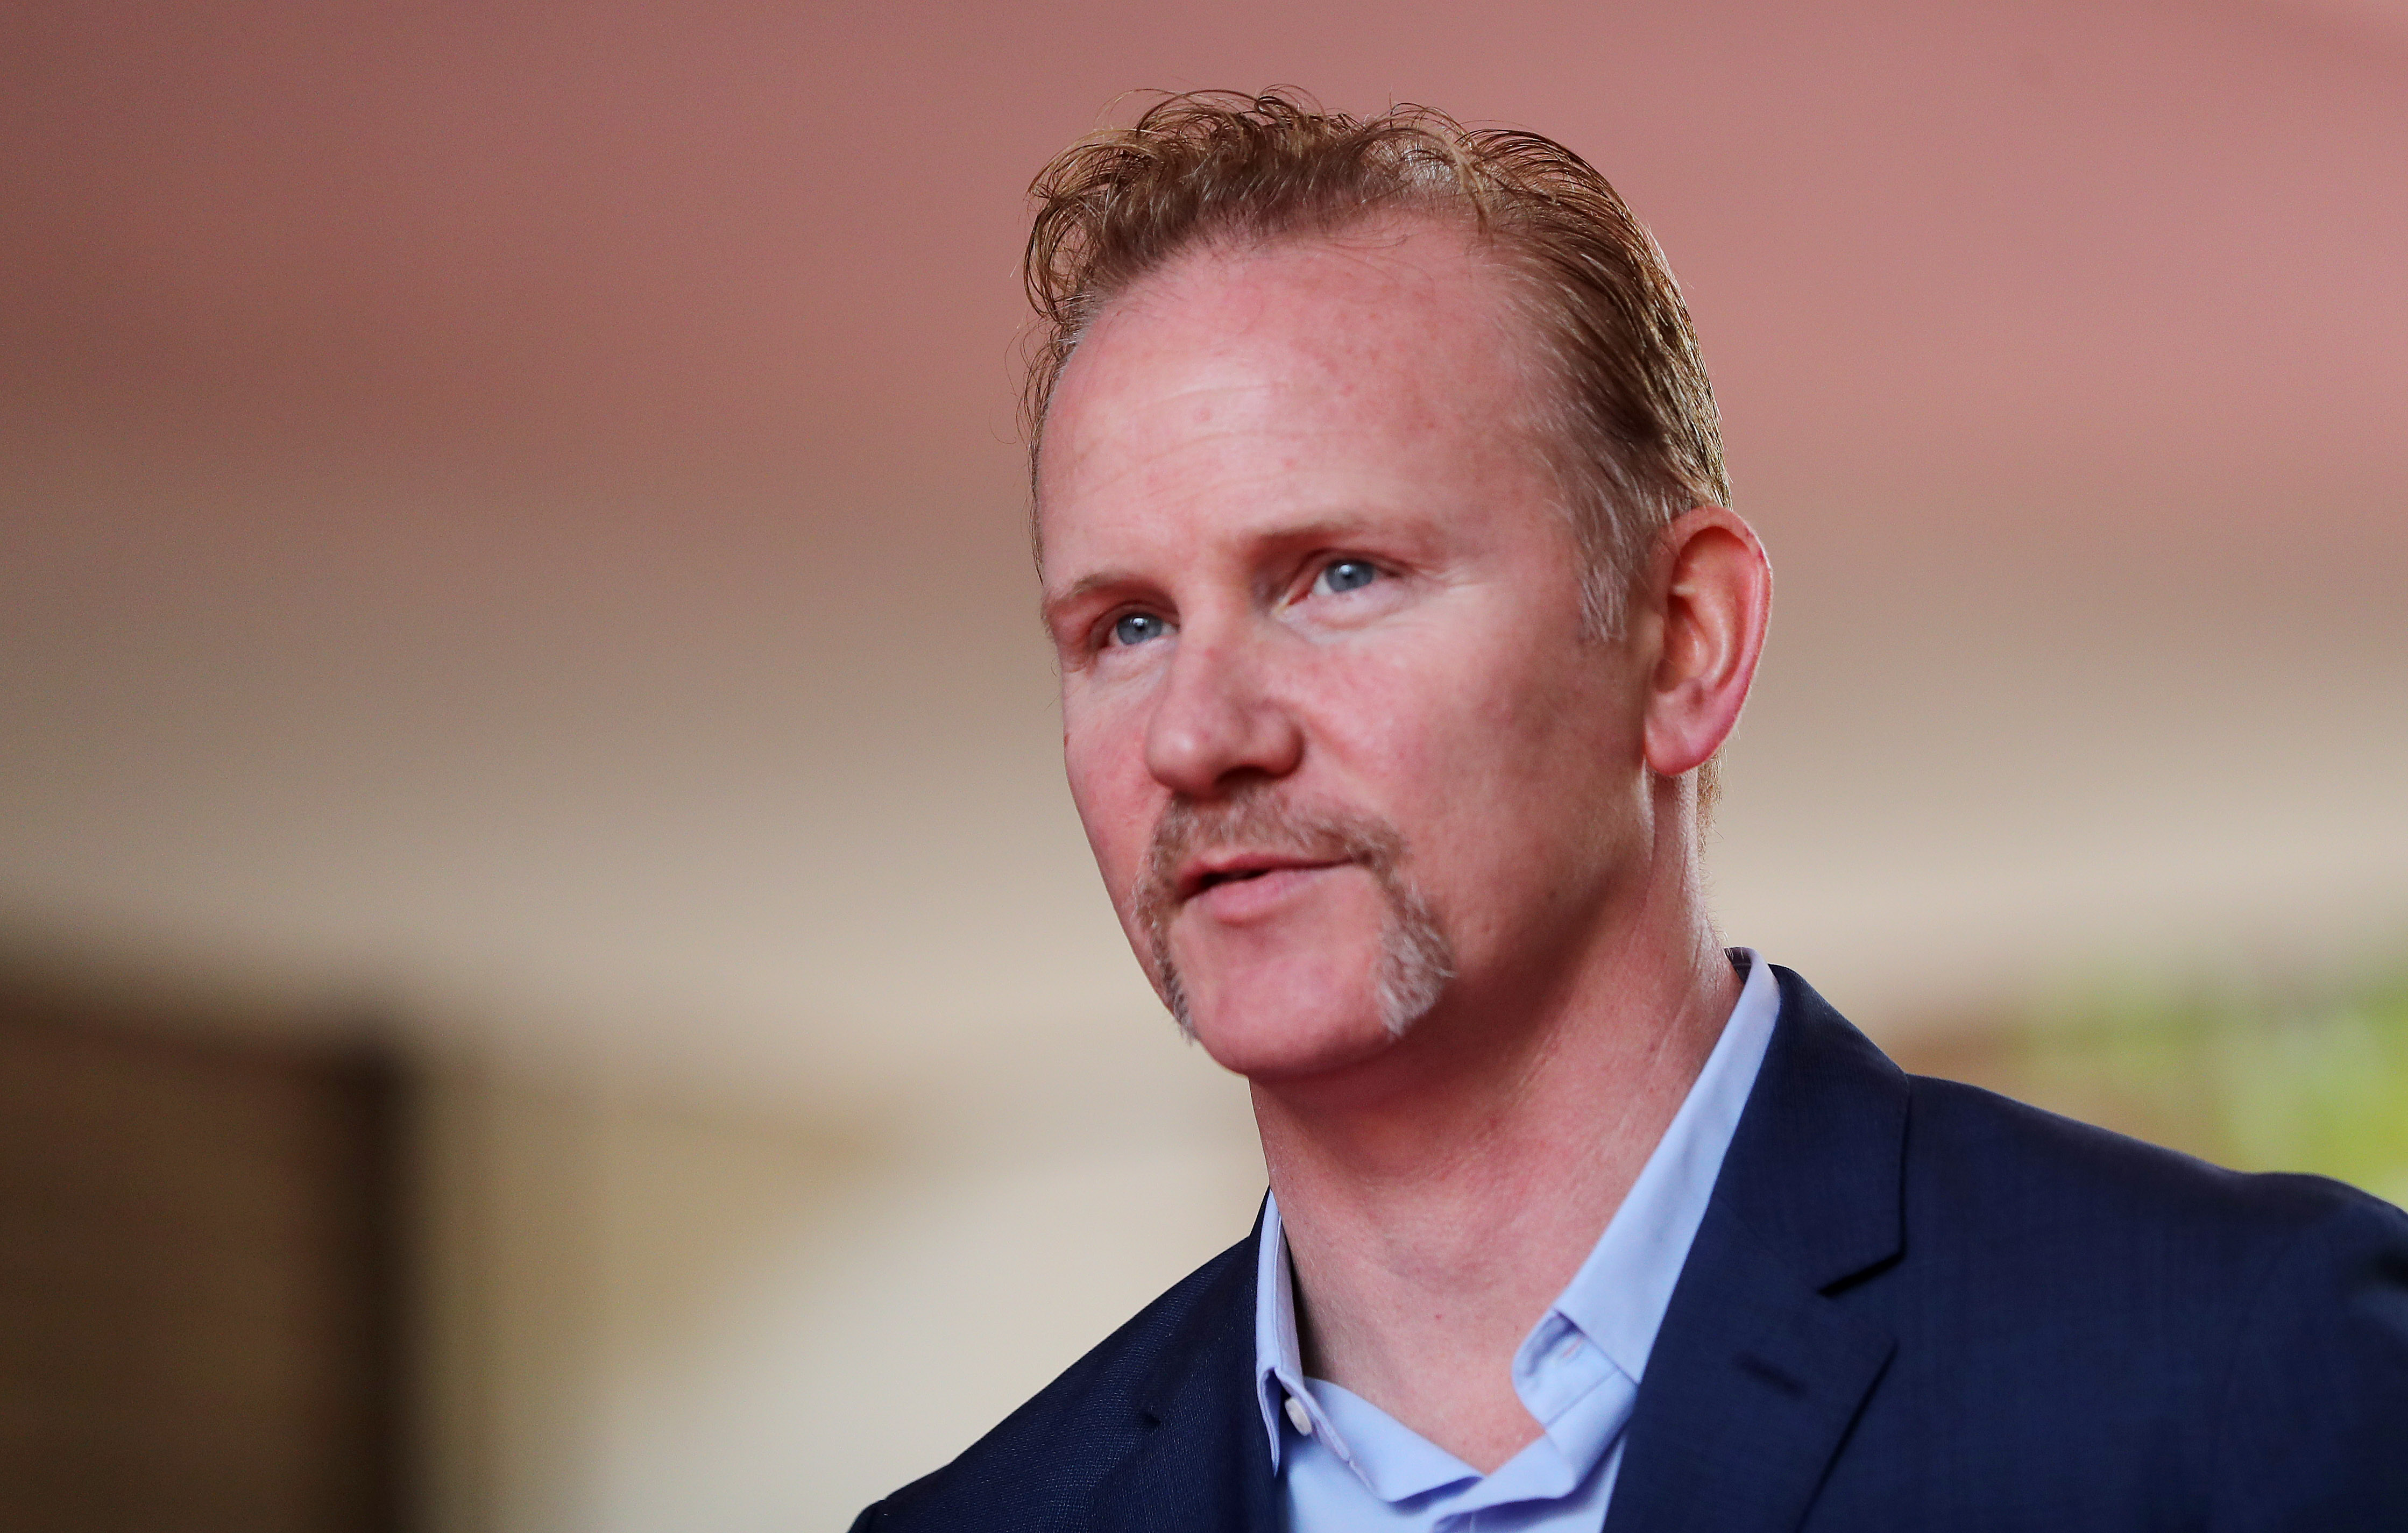 Morgan Spurlock at the red carpet for the movie,  TiFF Super Size Me 2   at the Ryerson Theatre  in Toronto.  Sept.8, 2017.